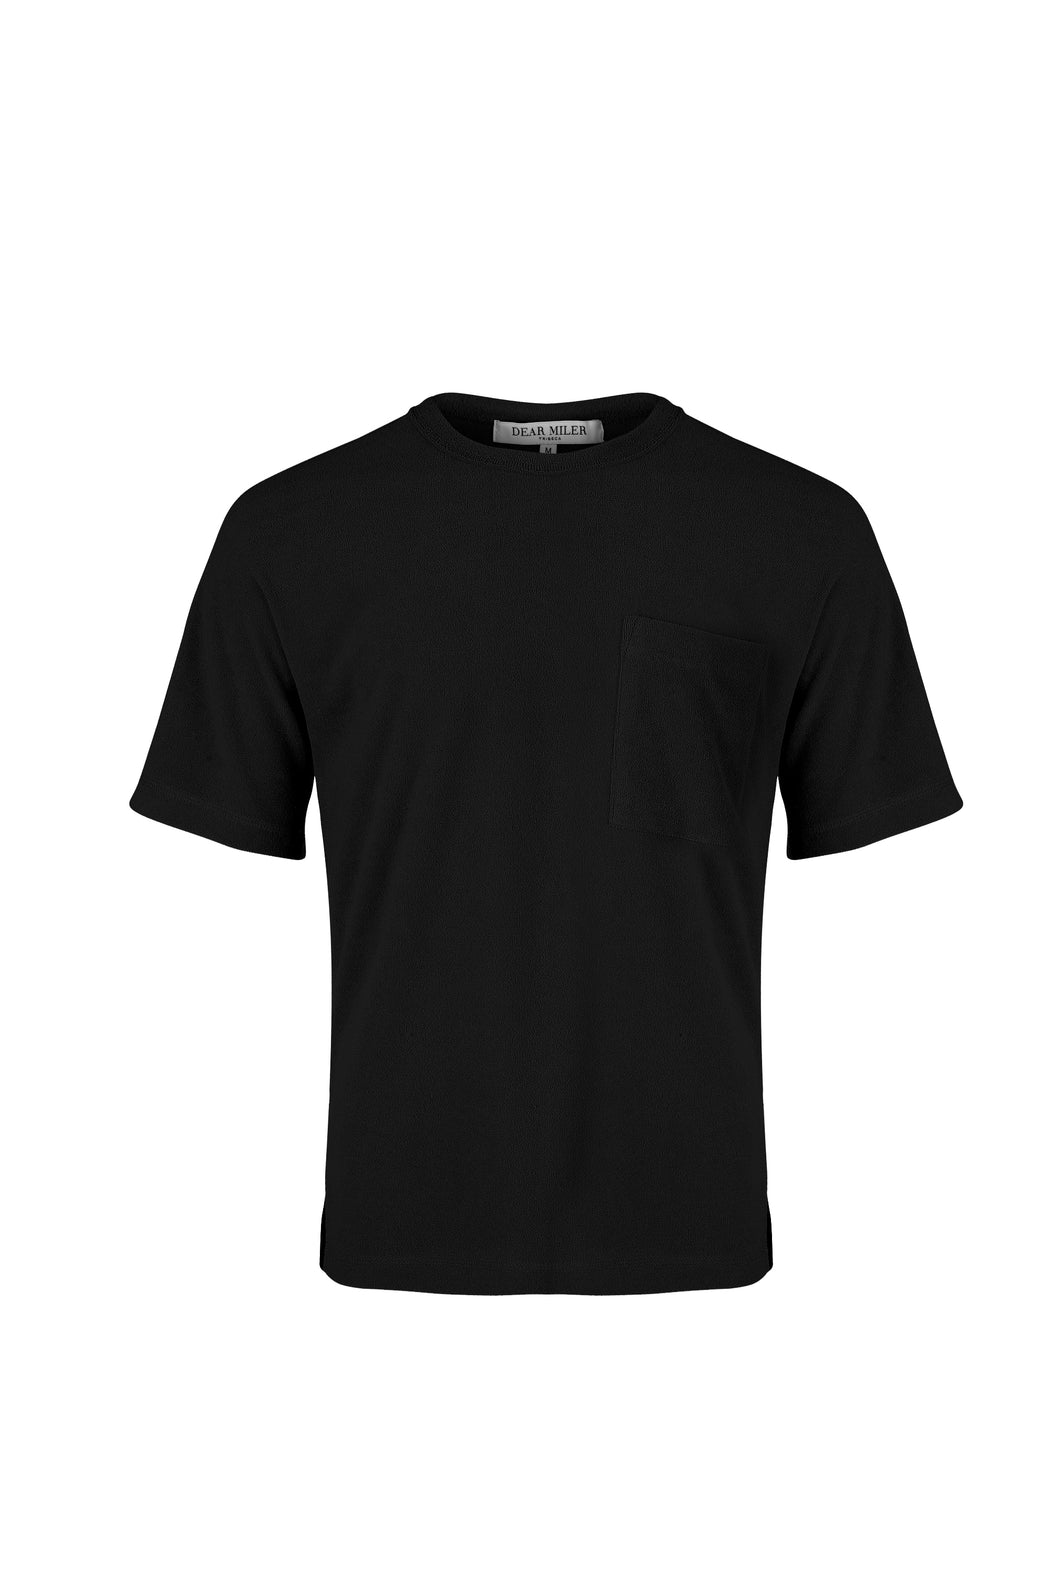 Front View of Men Pocket Blocked T-shirt, made with Supima Cotton in Black